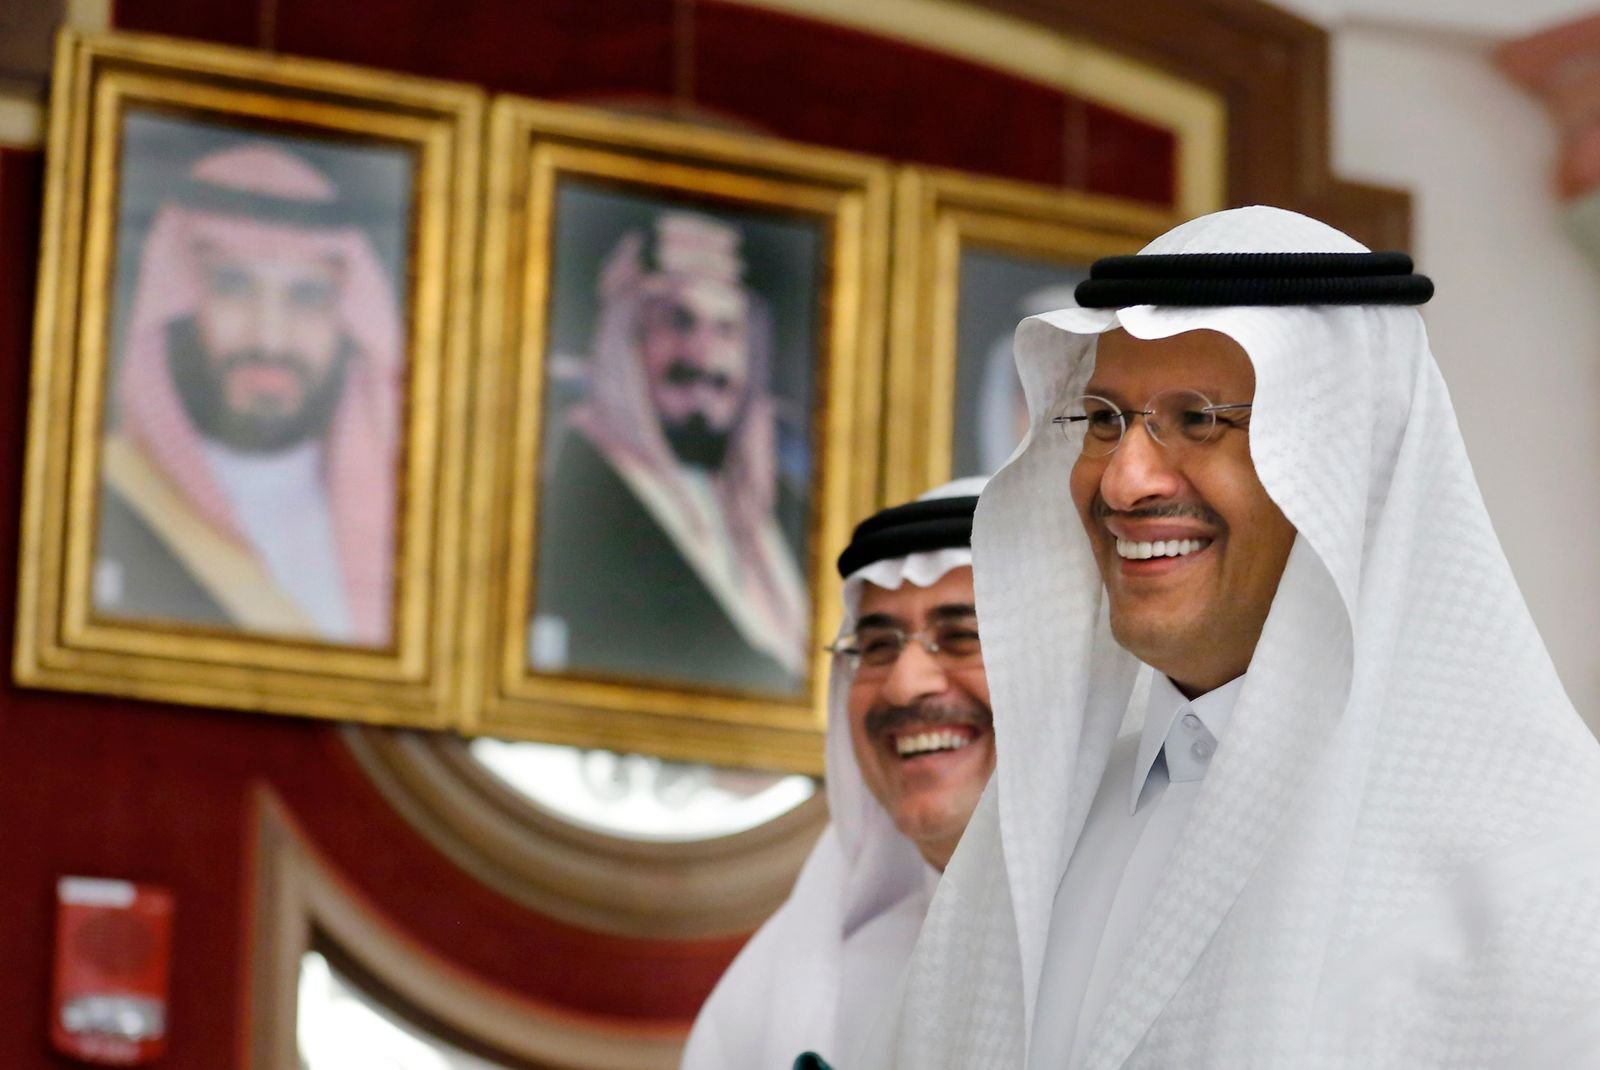 Energy Minister Prince Abdulaziz bin Salman, right, and Aramco CEO Amin Al-Nasser smile as they leave a press conference in Jiddah, Saudi Arabia, Tuesday, Sept. 17, 2019. (AP Photo/Amr Nabil)